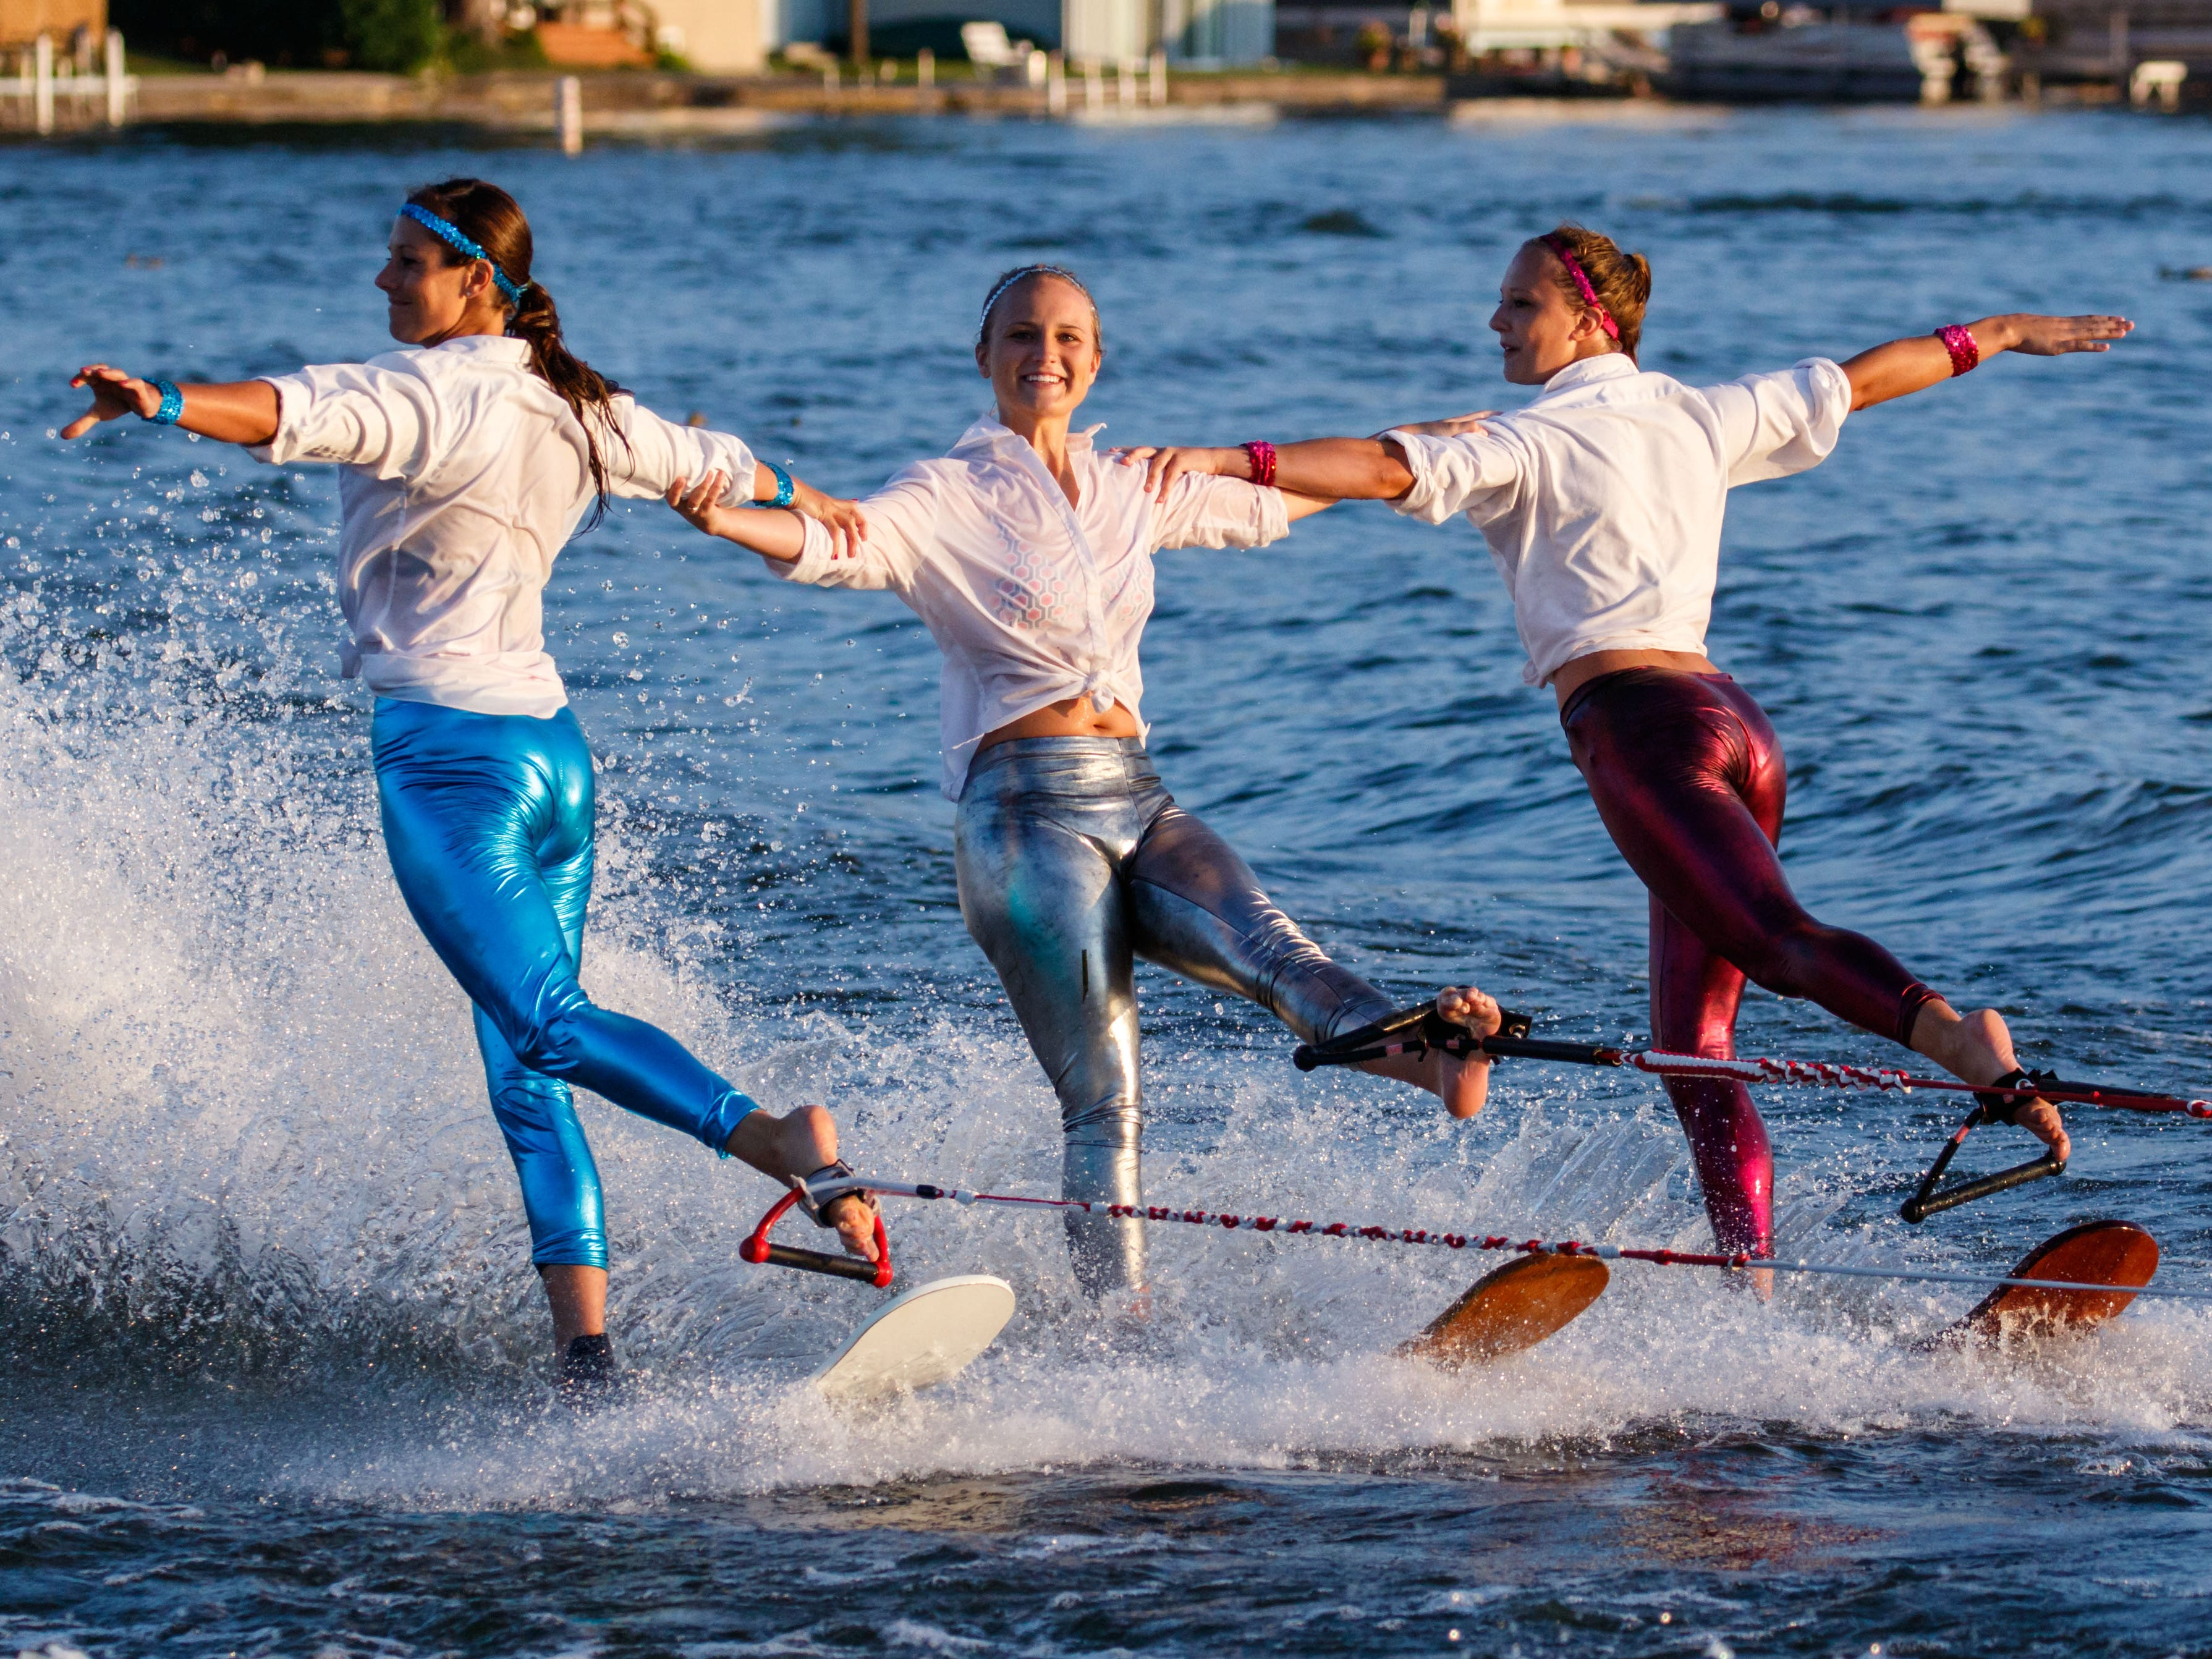 Skiers (from left) Amanda Norris of Oconomowoc, Taylor Barry of Wauwatosa and Kristie Regal of Oconomowoc perform on swivel skis during the Pewaukee Lake Water Ski Club's weekly show at Lakefront Park on Thursday, August 2, 2018.